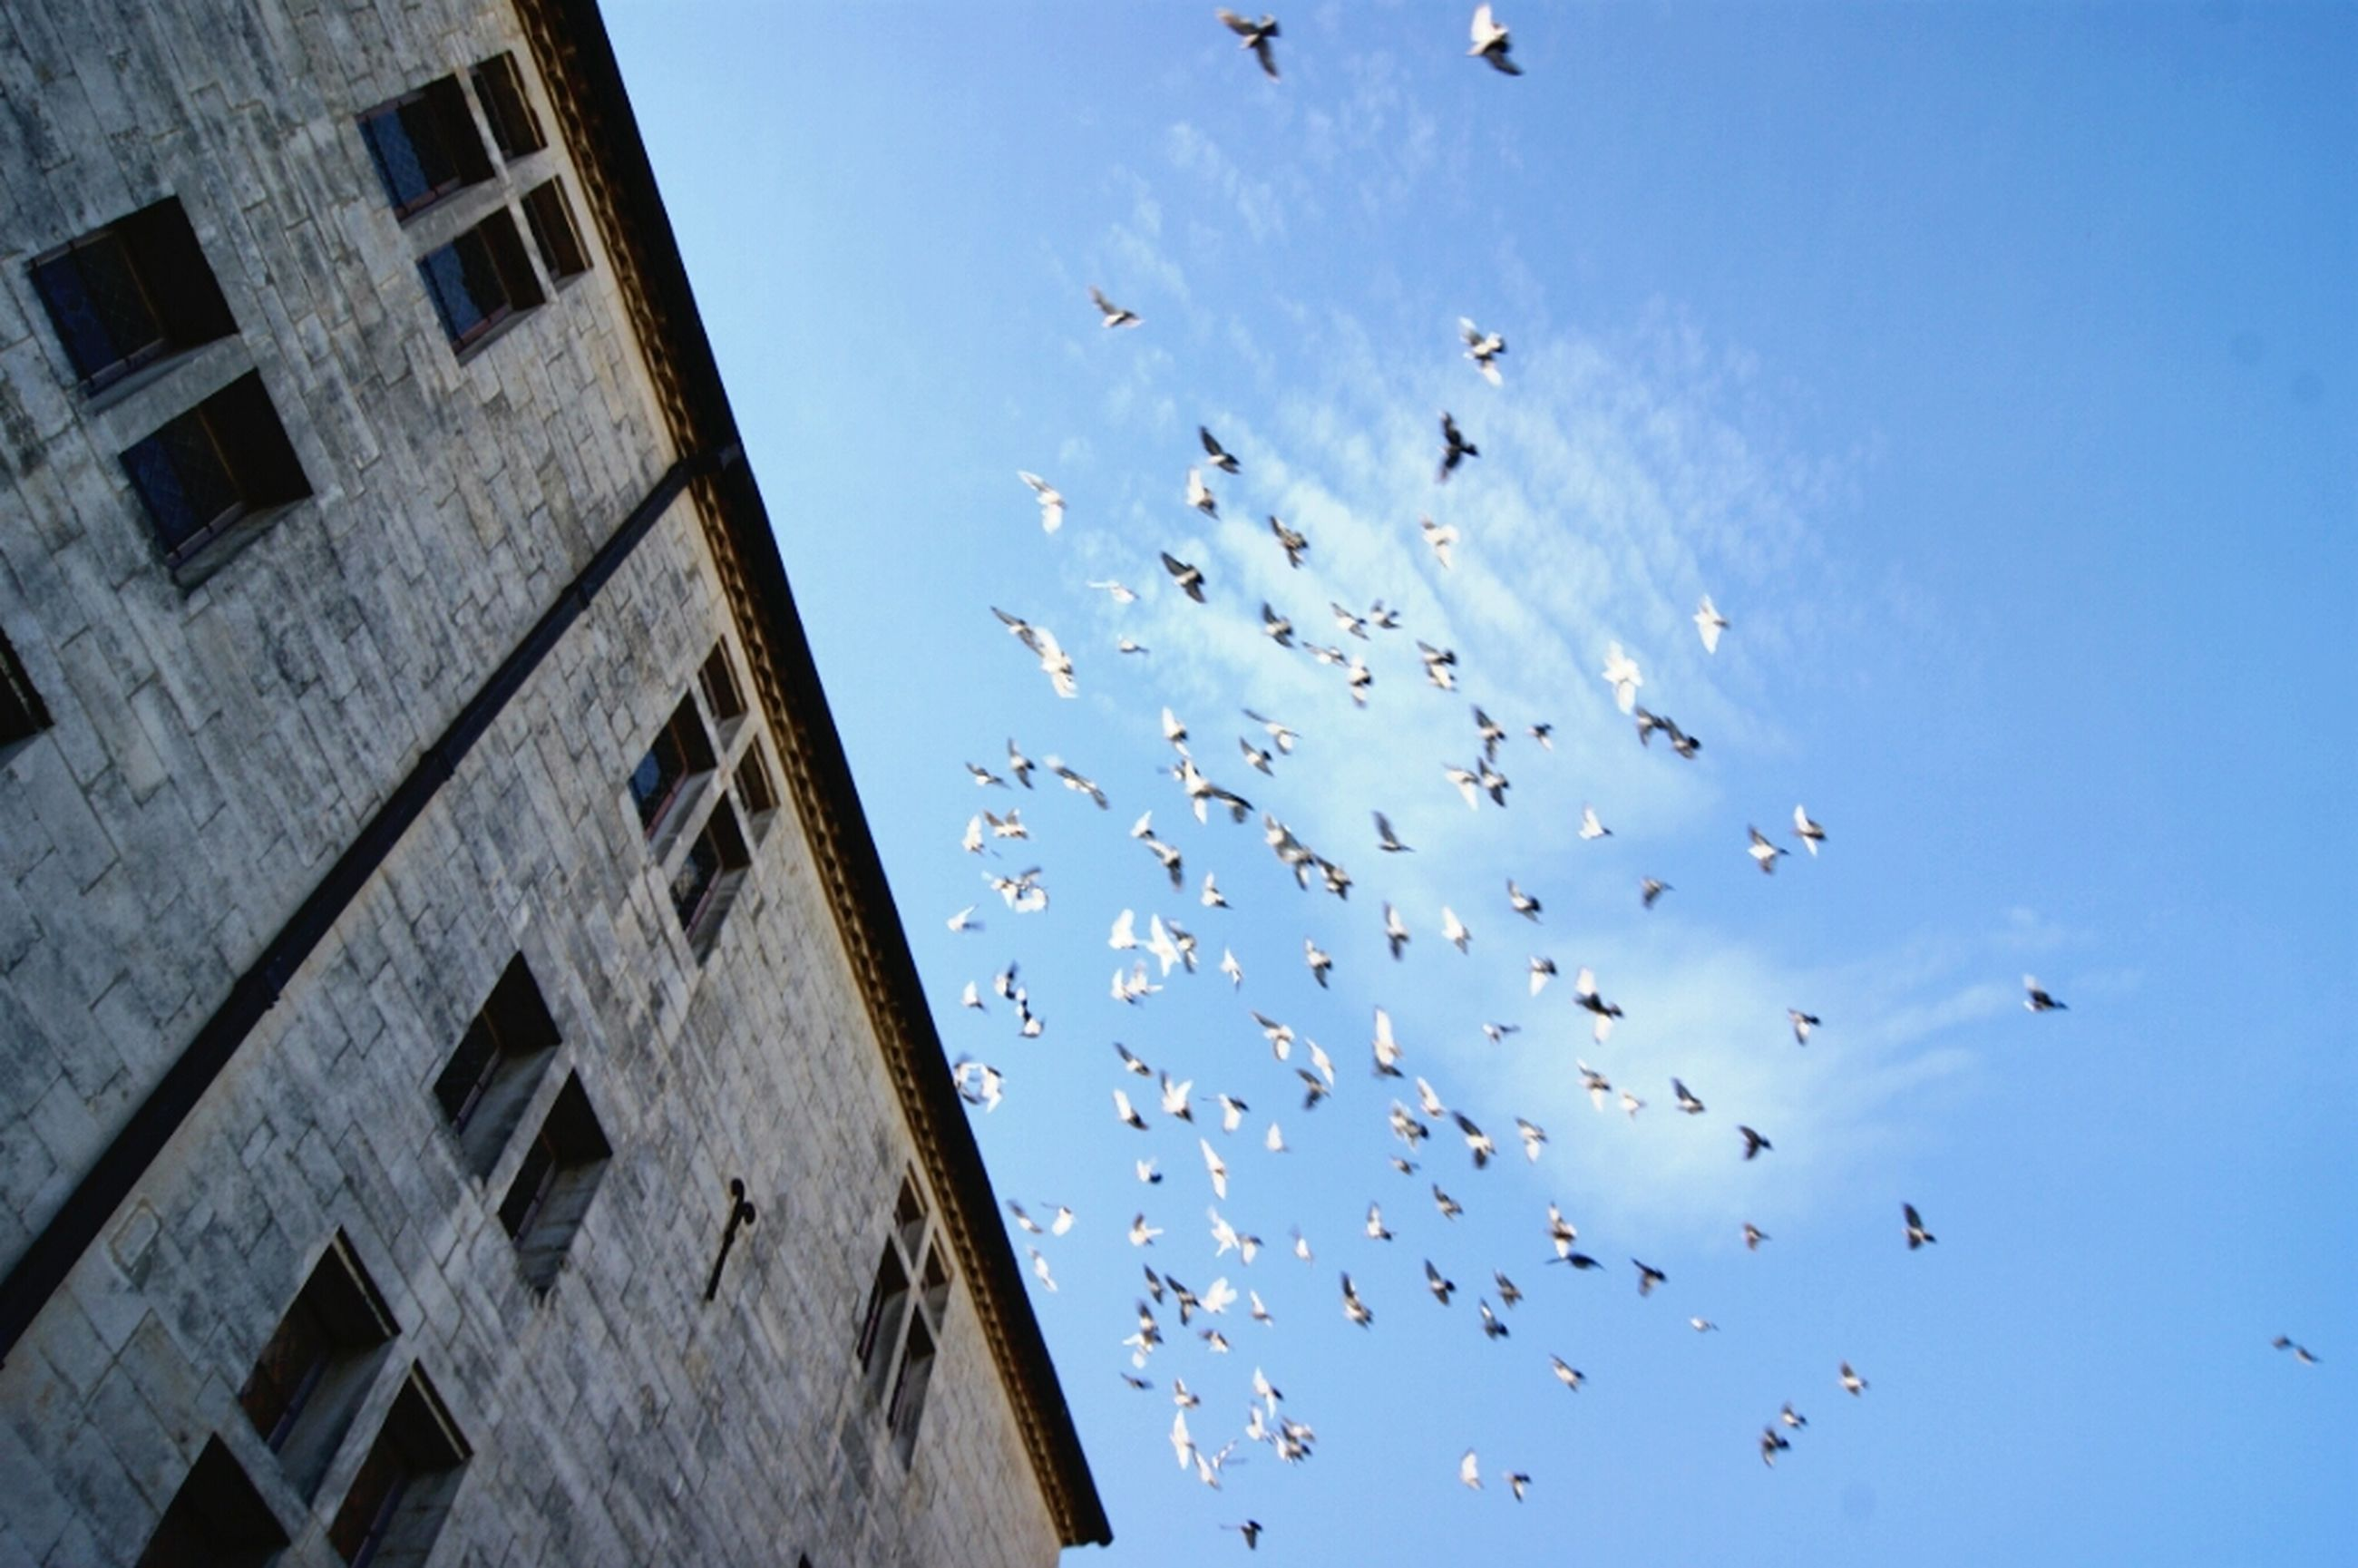 bird, low angle view, flying, flock of birds, animals in the wild, animal themes, wildlife, sky, built structure, architecture, mid-air, building exterior, blue, spread wings, day, outdoors, no people, medium group of animals, clear sky